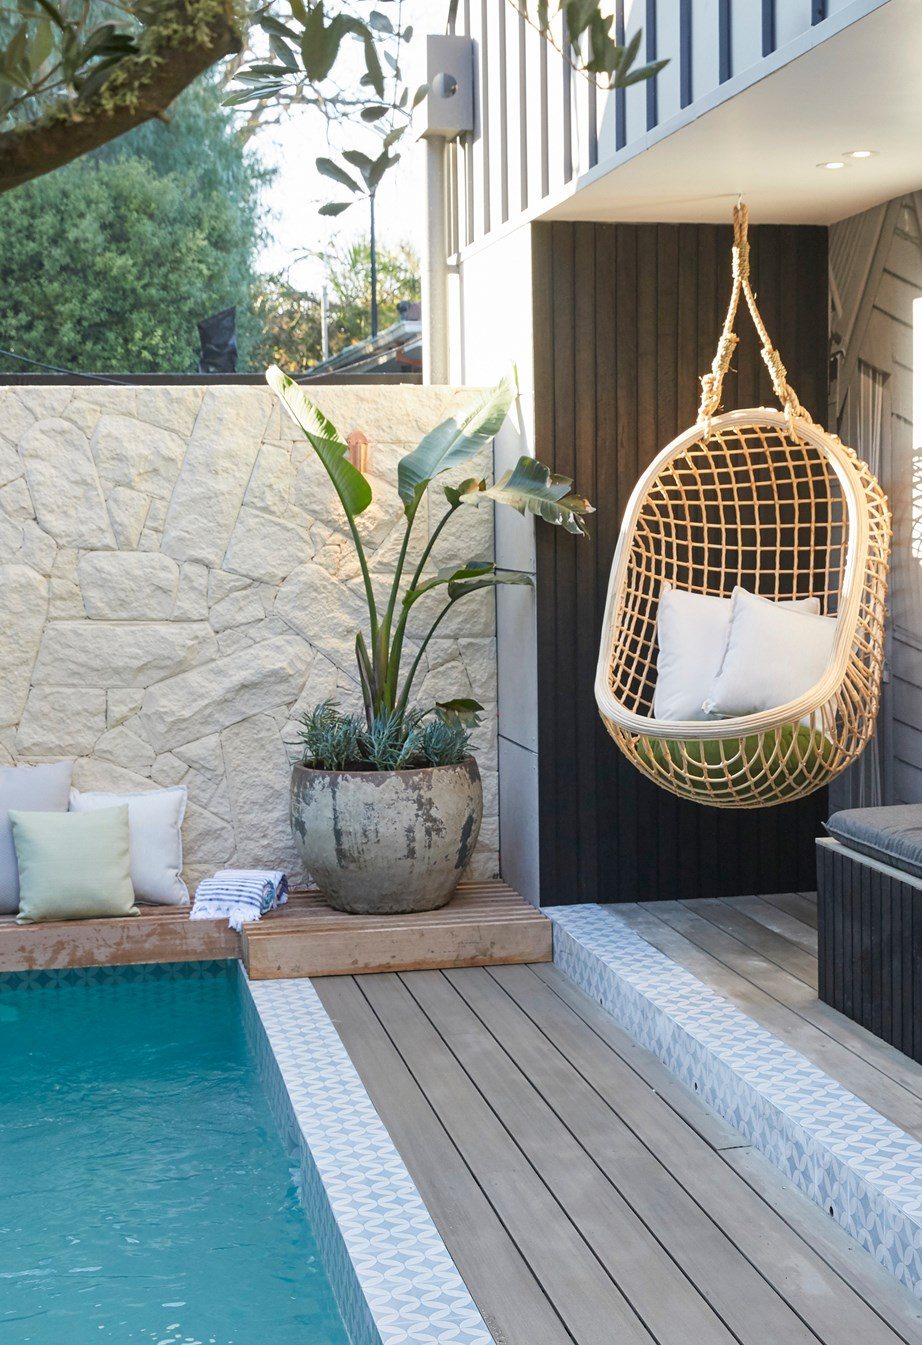 **Week 12, Backyards and Pool** With The Block's favourite landscape designer Dave Franklin at their side, Sarah and George created an inviting and tranquil outdoor oasis complete with an integrated barbecue and pizza oven, stunning pool area with a limestone feature wall and a lush mix of plantings that had the judges swooning.